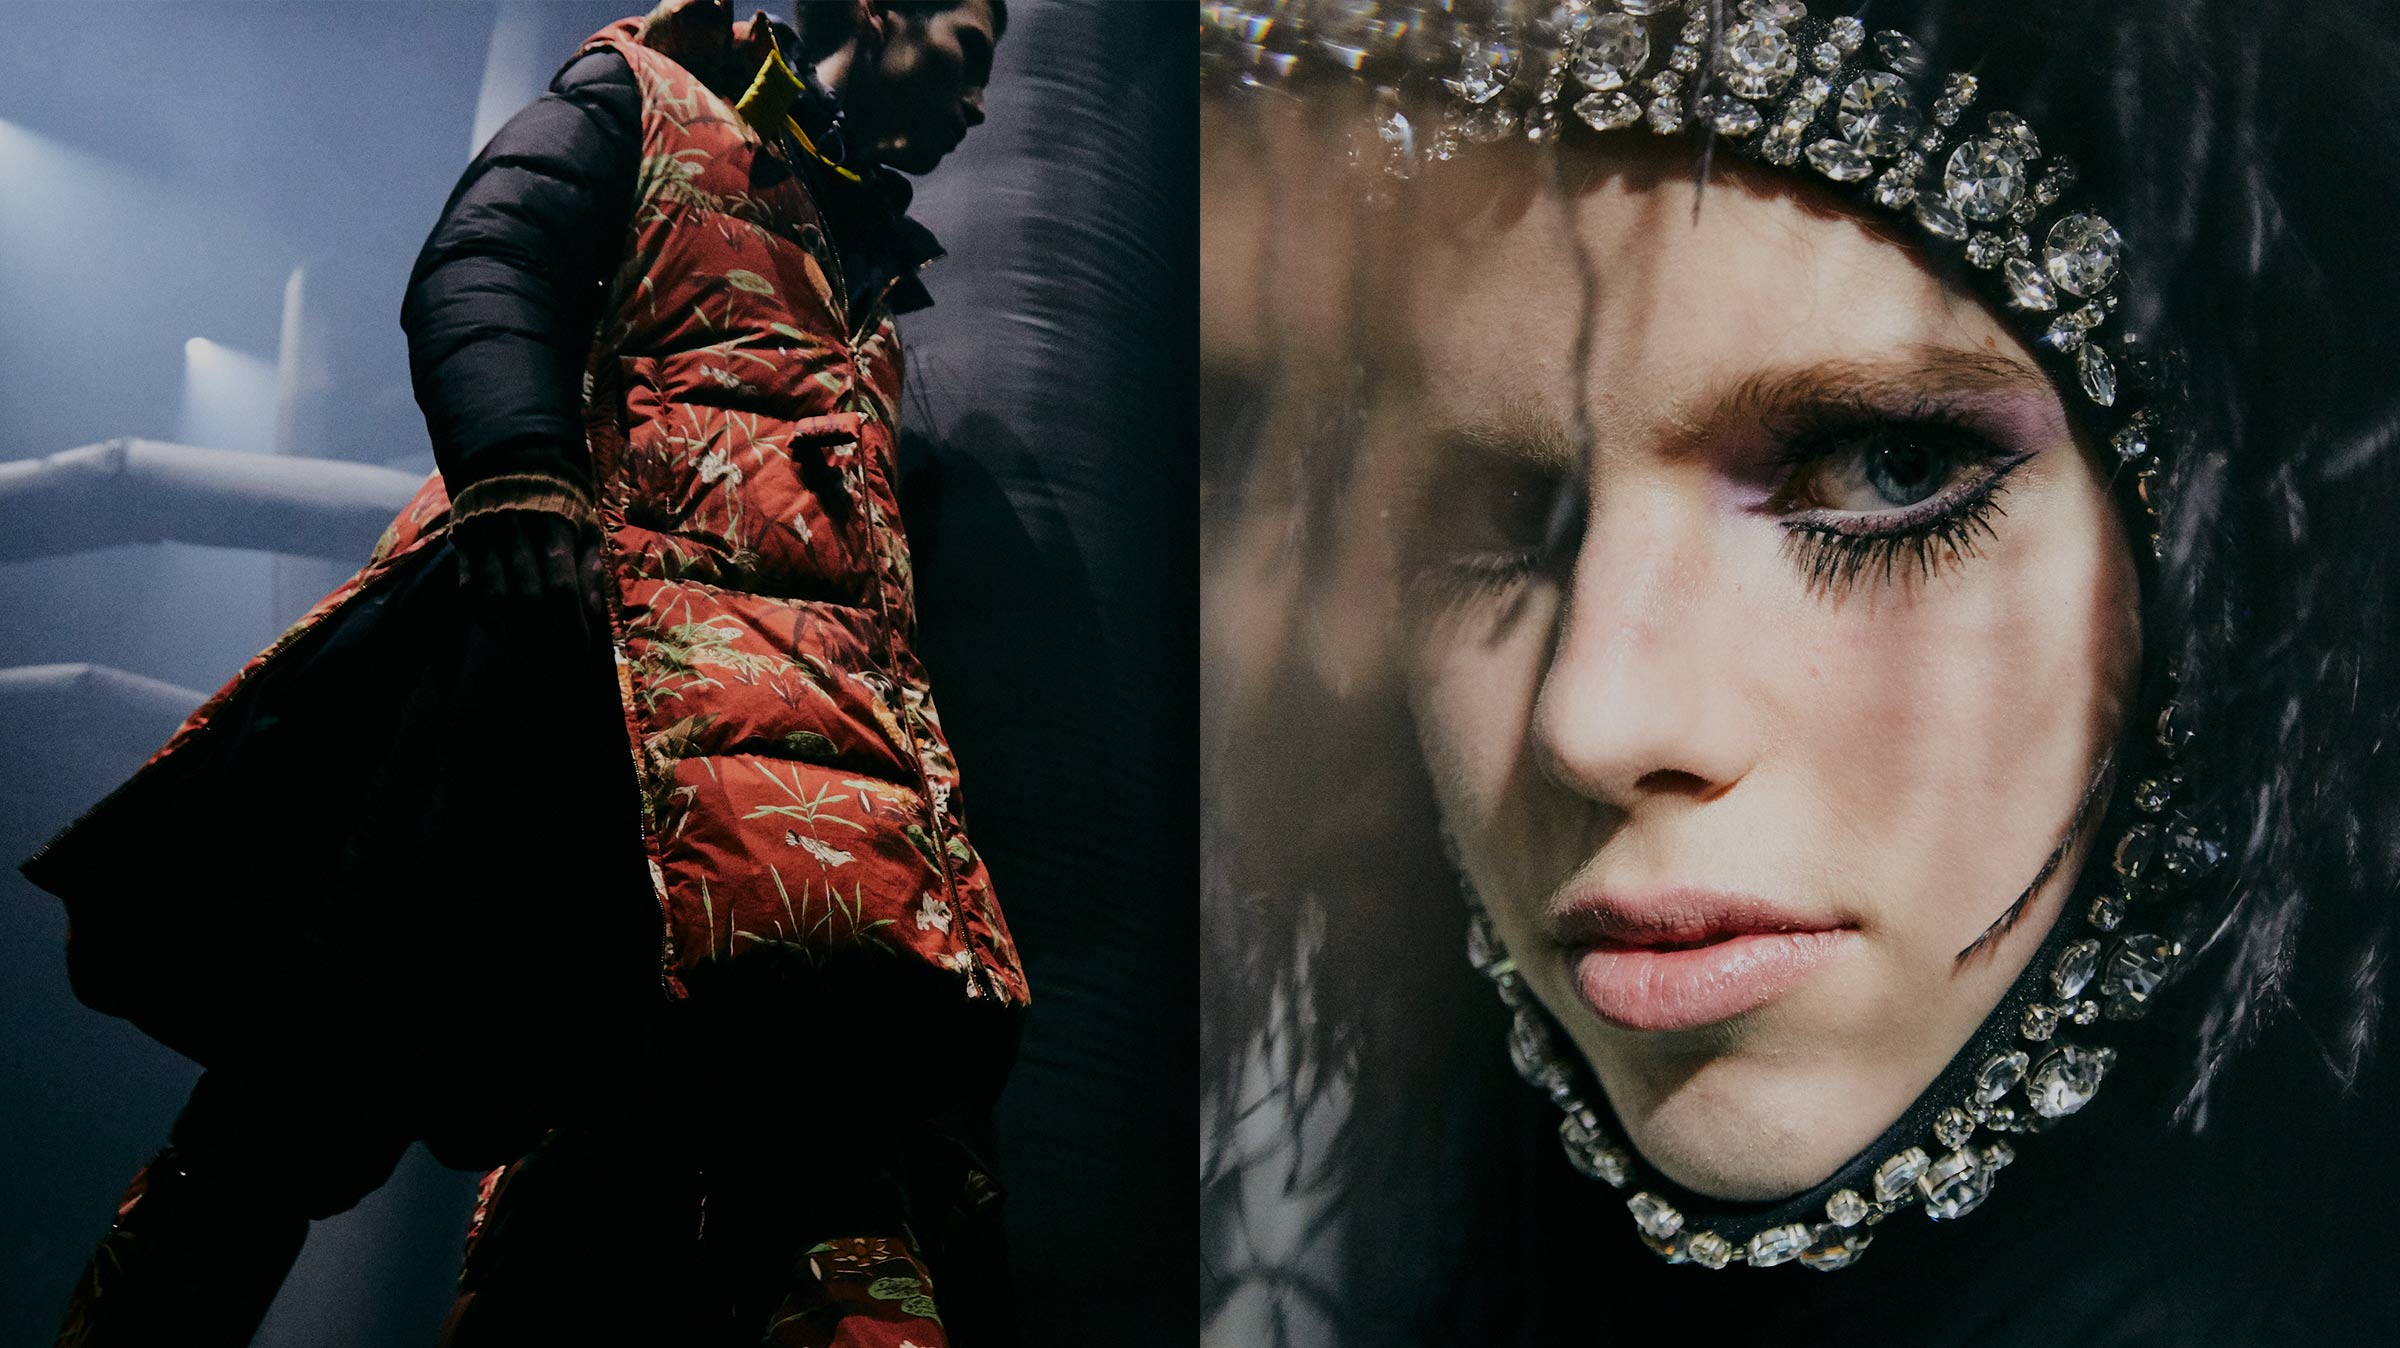 Goths, flower children, genderless punks: Moncler Genius is fashion's new first family